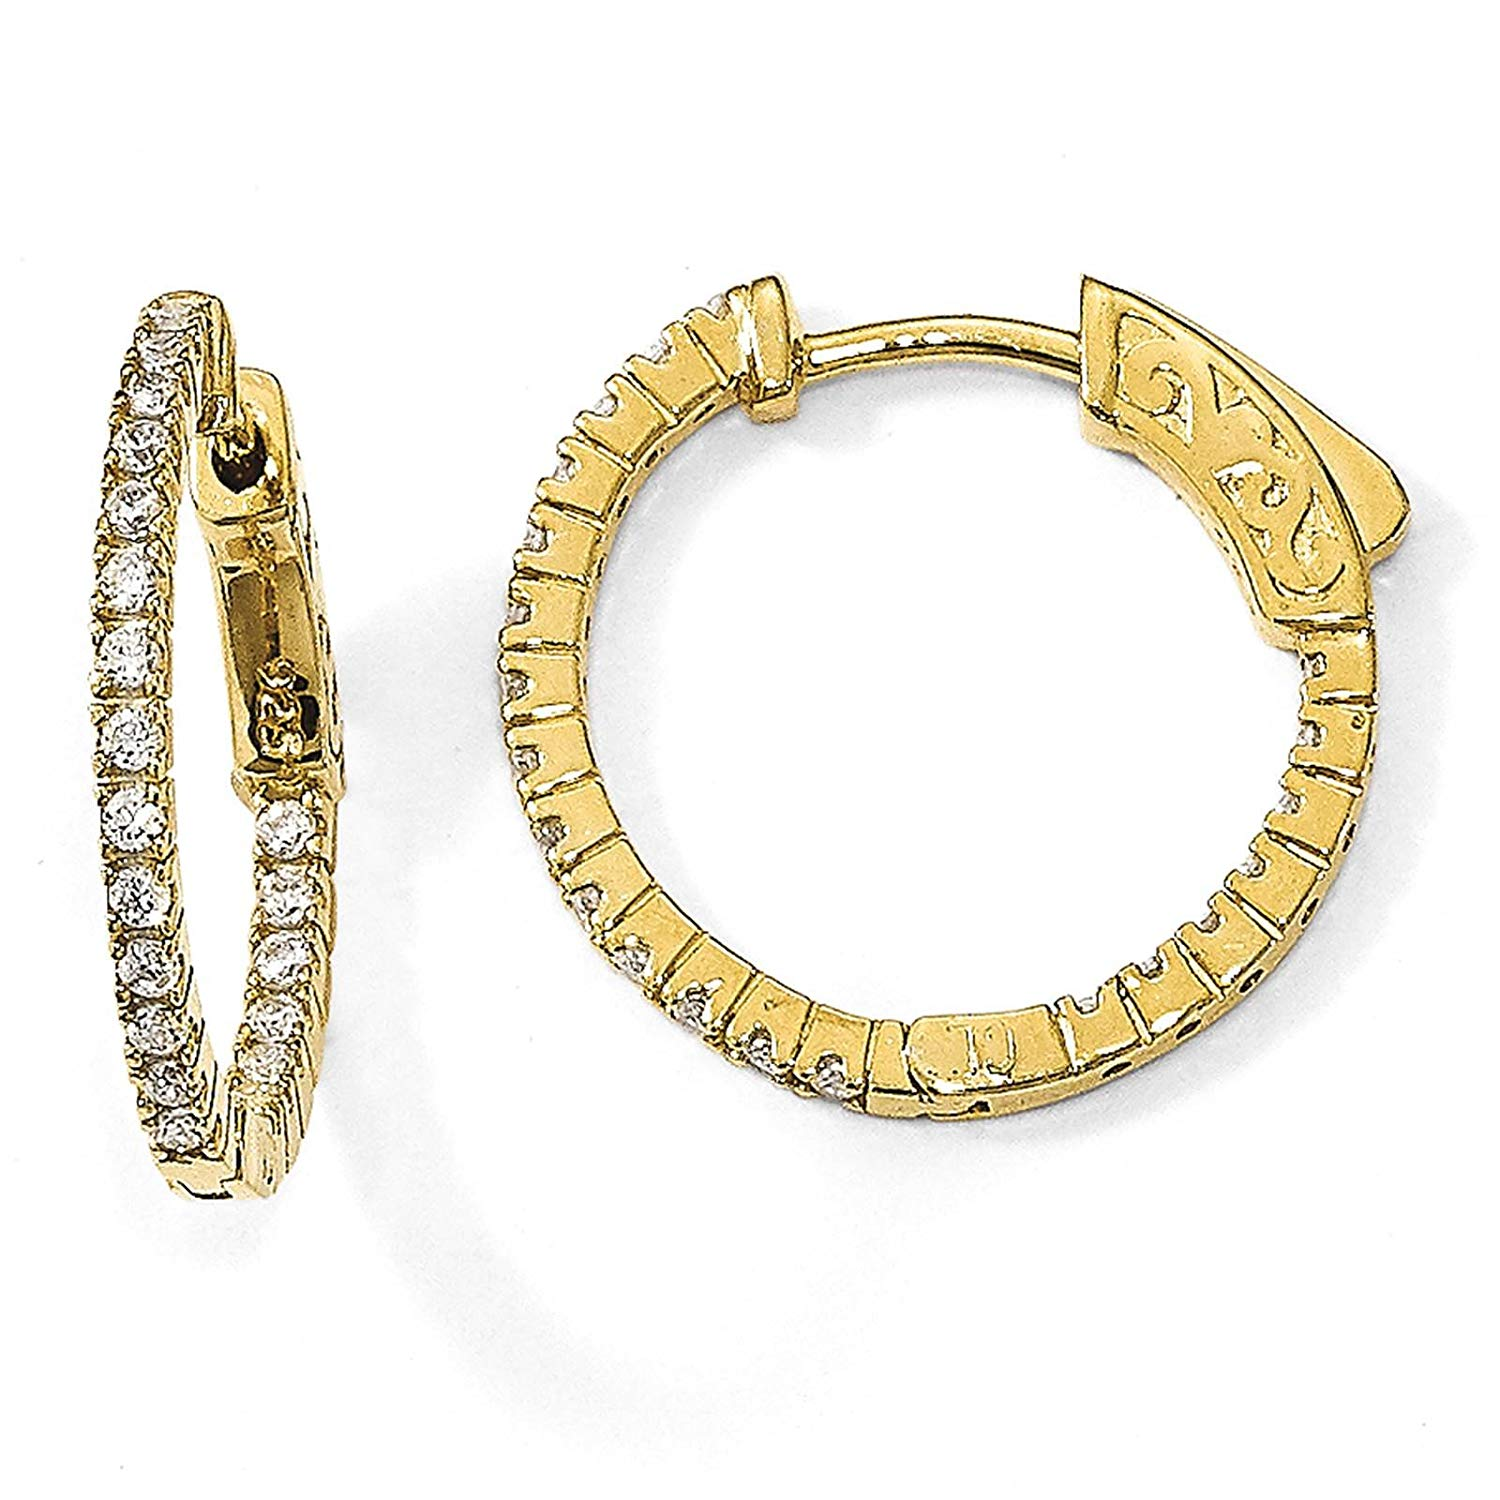 .925 Sterling Silver Gold-tone CZ In & Out Round Hoop Earrings 2mm x 18mm by Sterling Shimmer